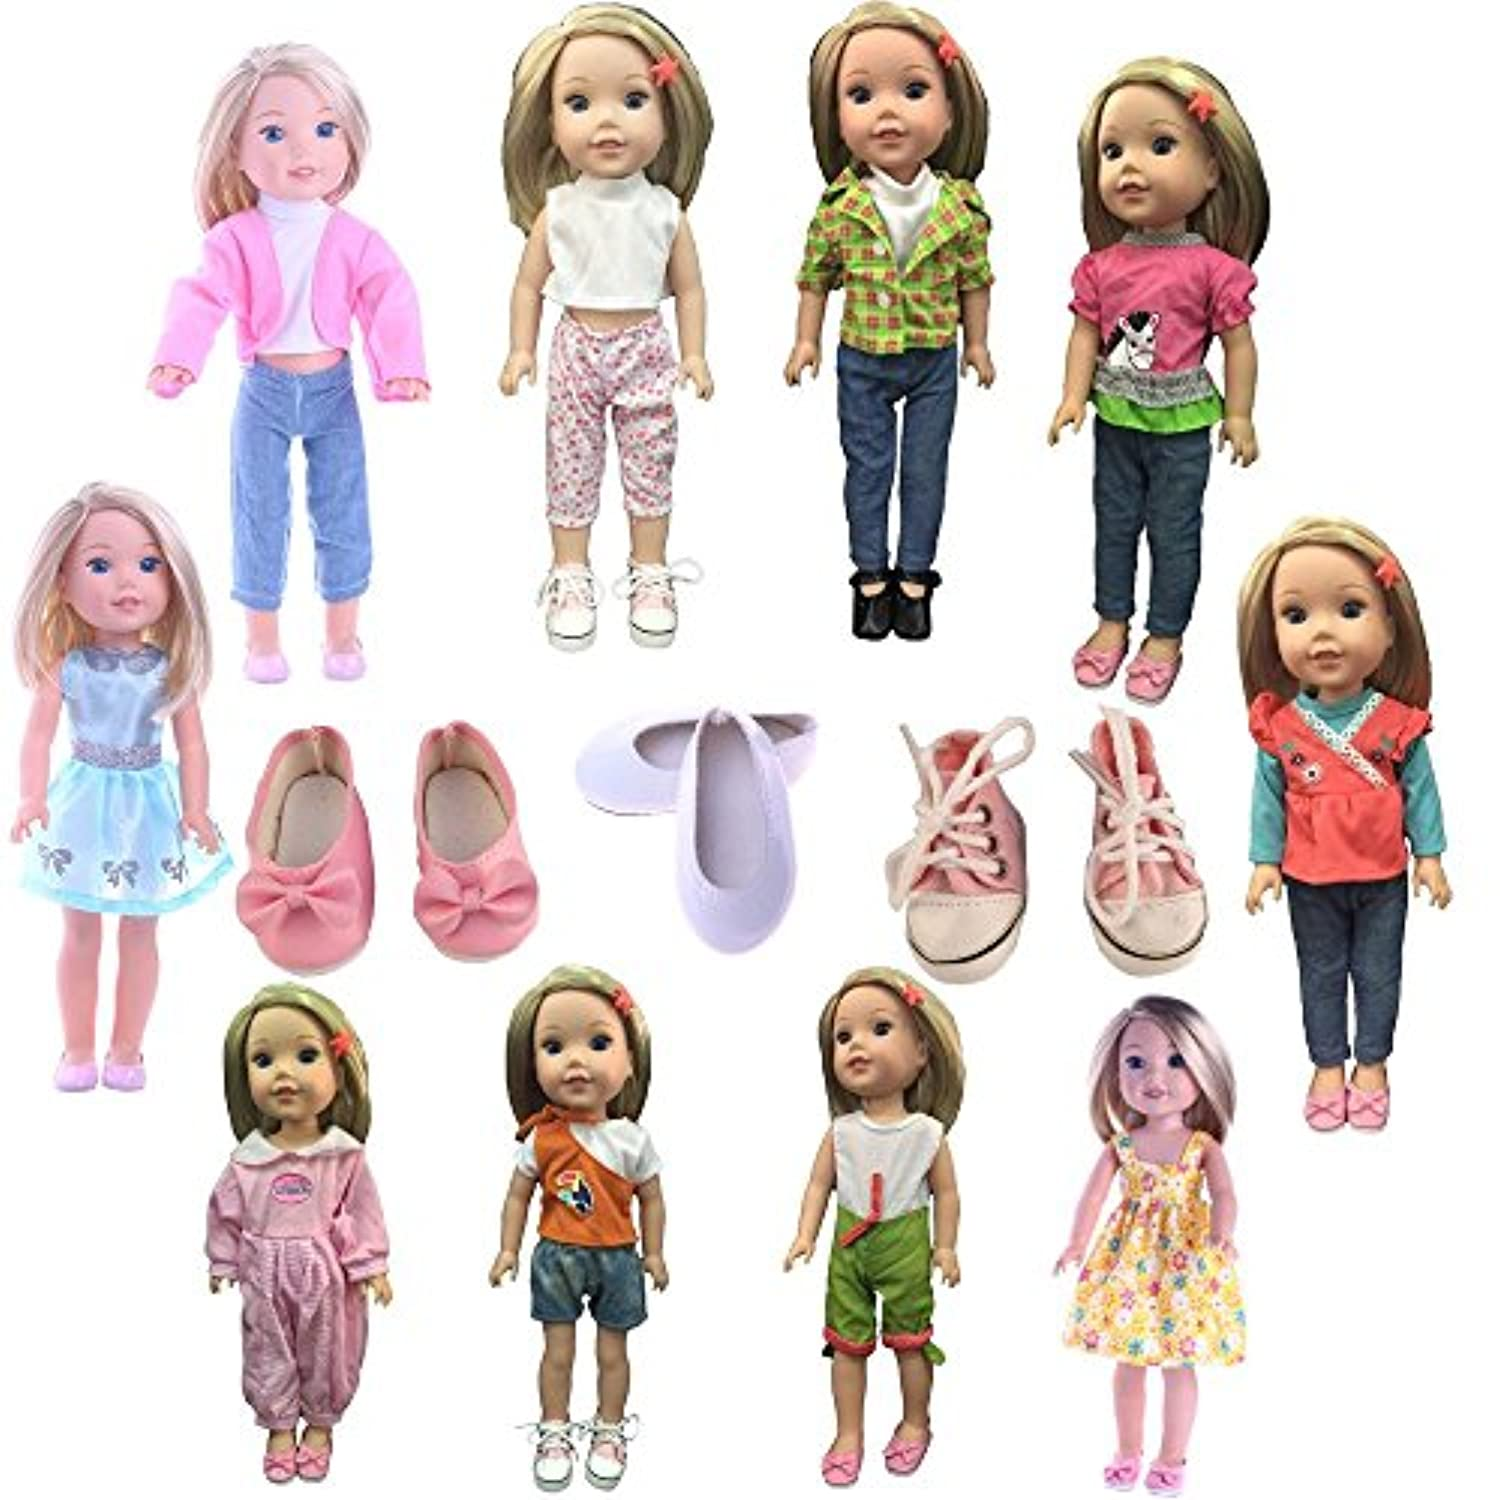 Luckdoll 5sets clothes and 3 pairs shoes, Fits 14 inch Doll such as Wellie Wisher